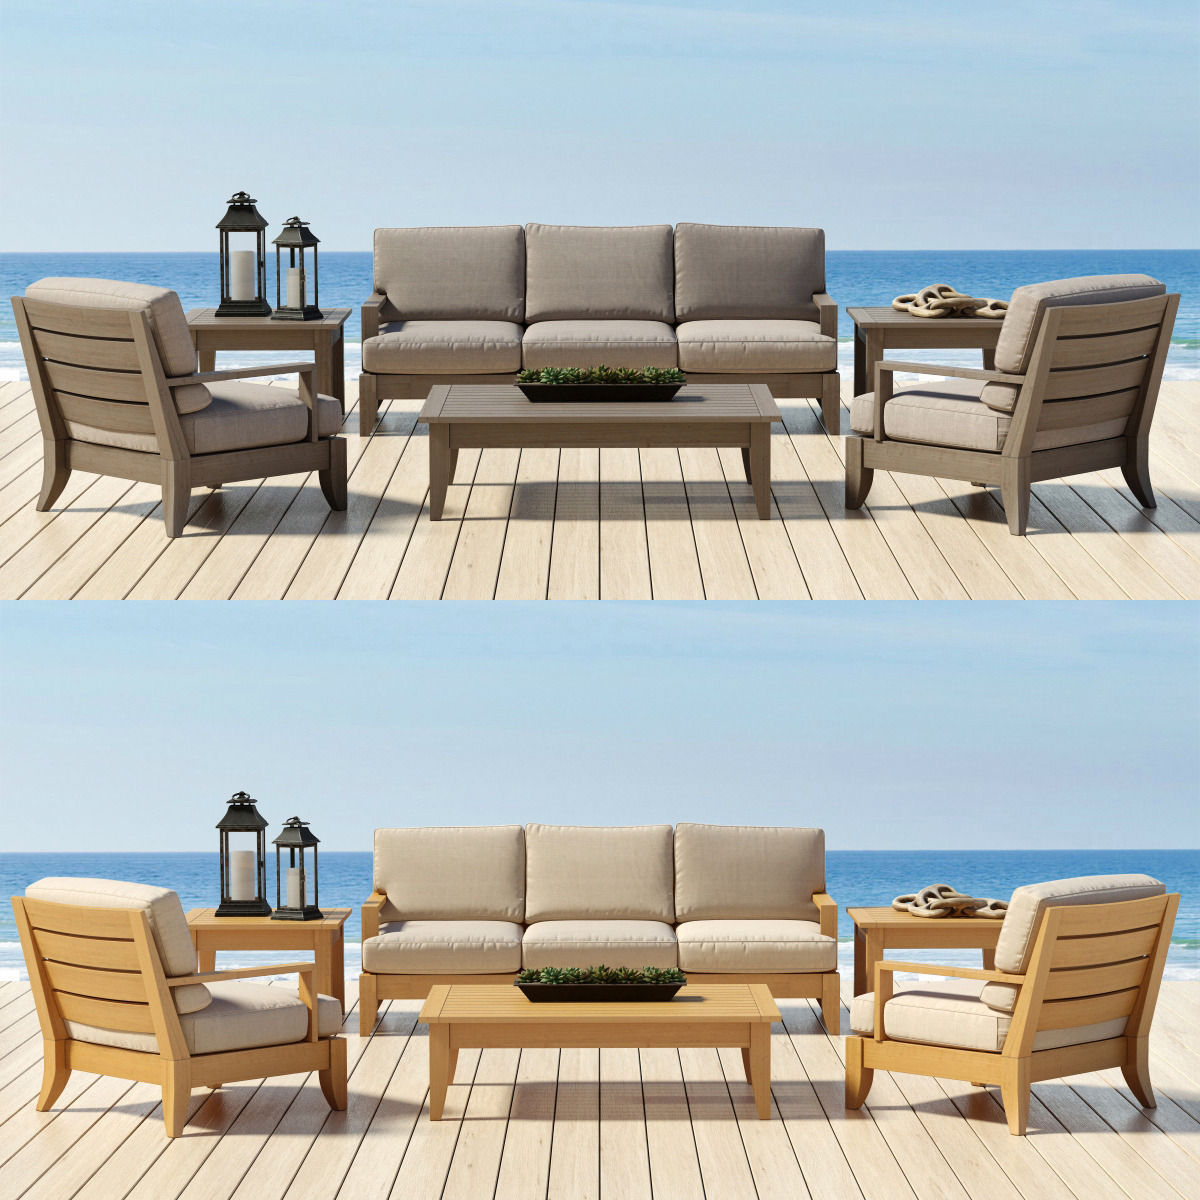 restoration hardware santa barbara collection 3d model max obj fbx - Garden Furniture 3d